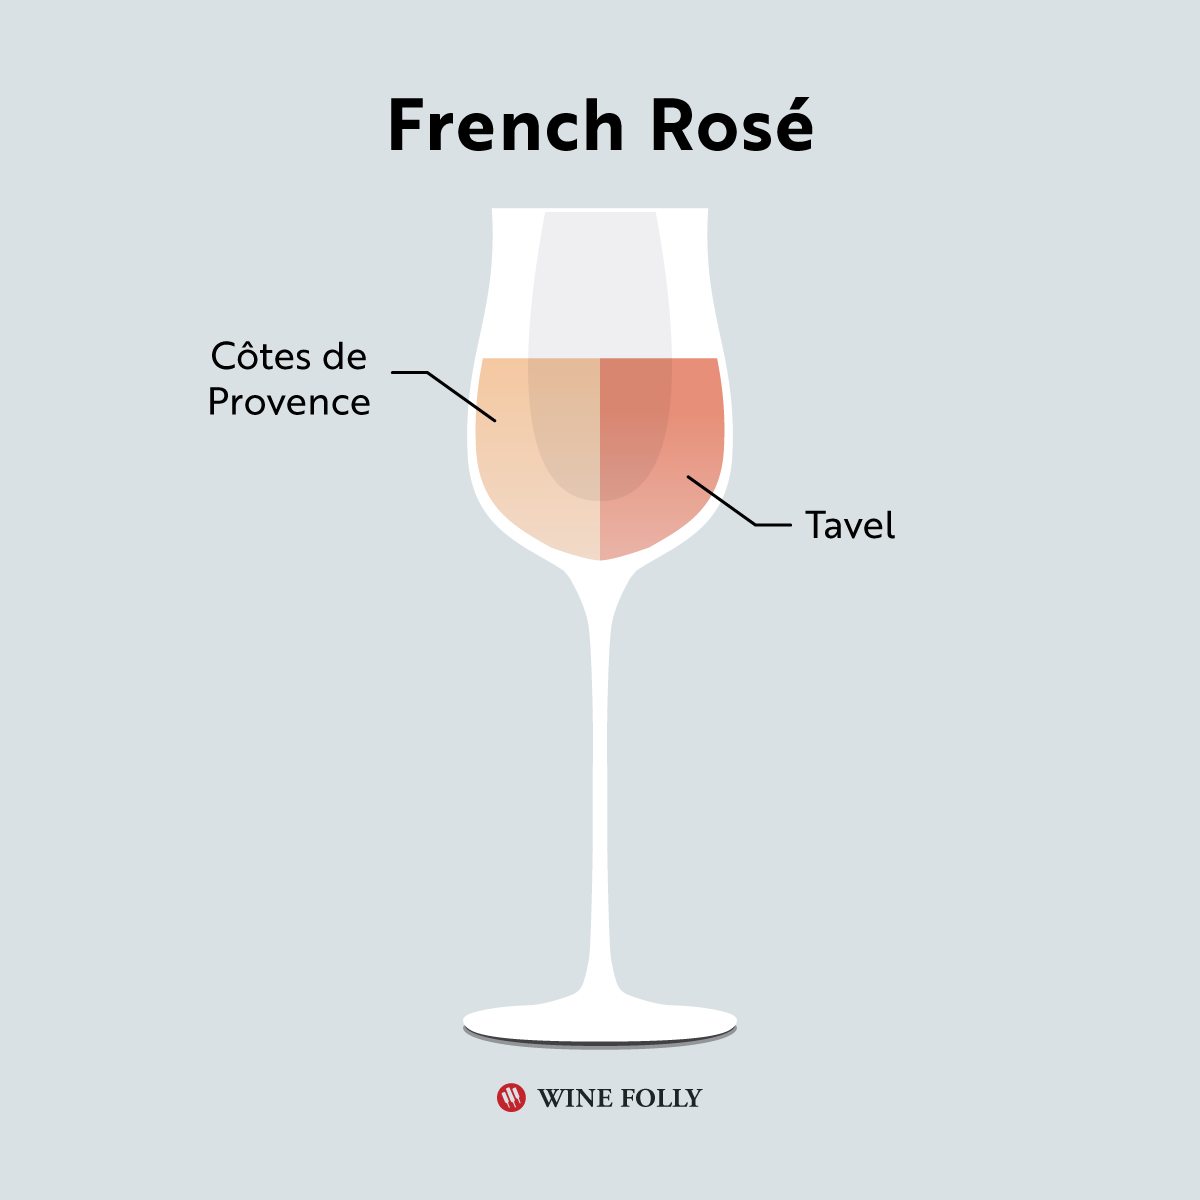 Illustration of French Rose wine including cotes de provence and tavel in a glass by Wine Folly